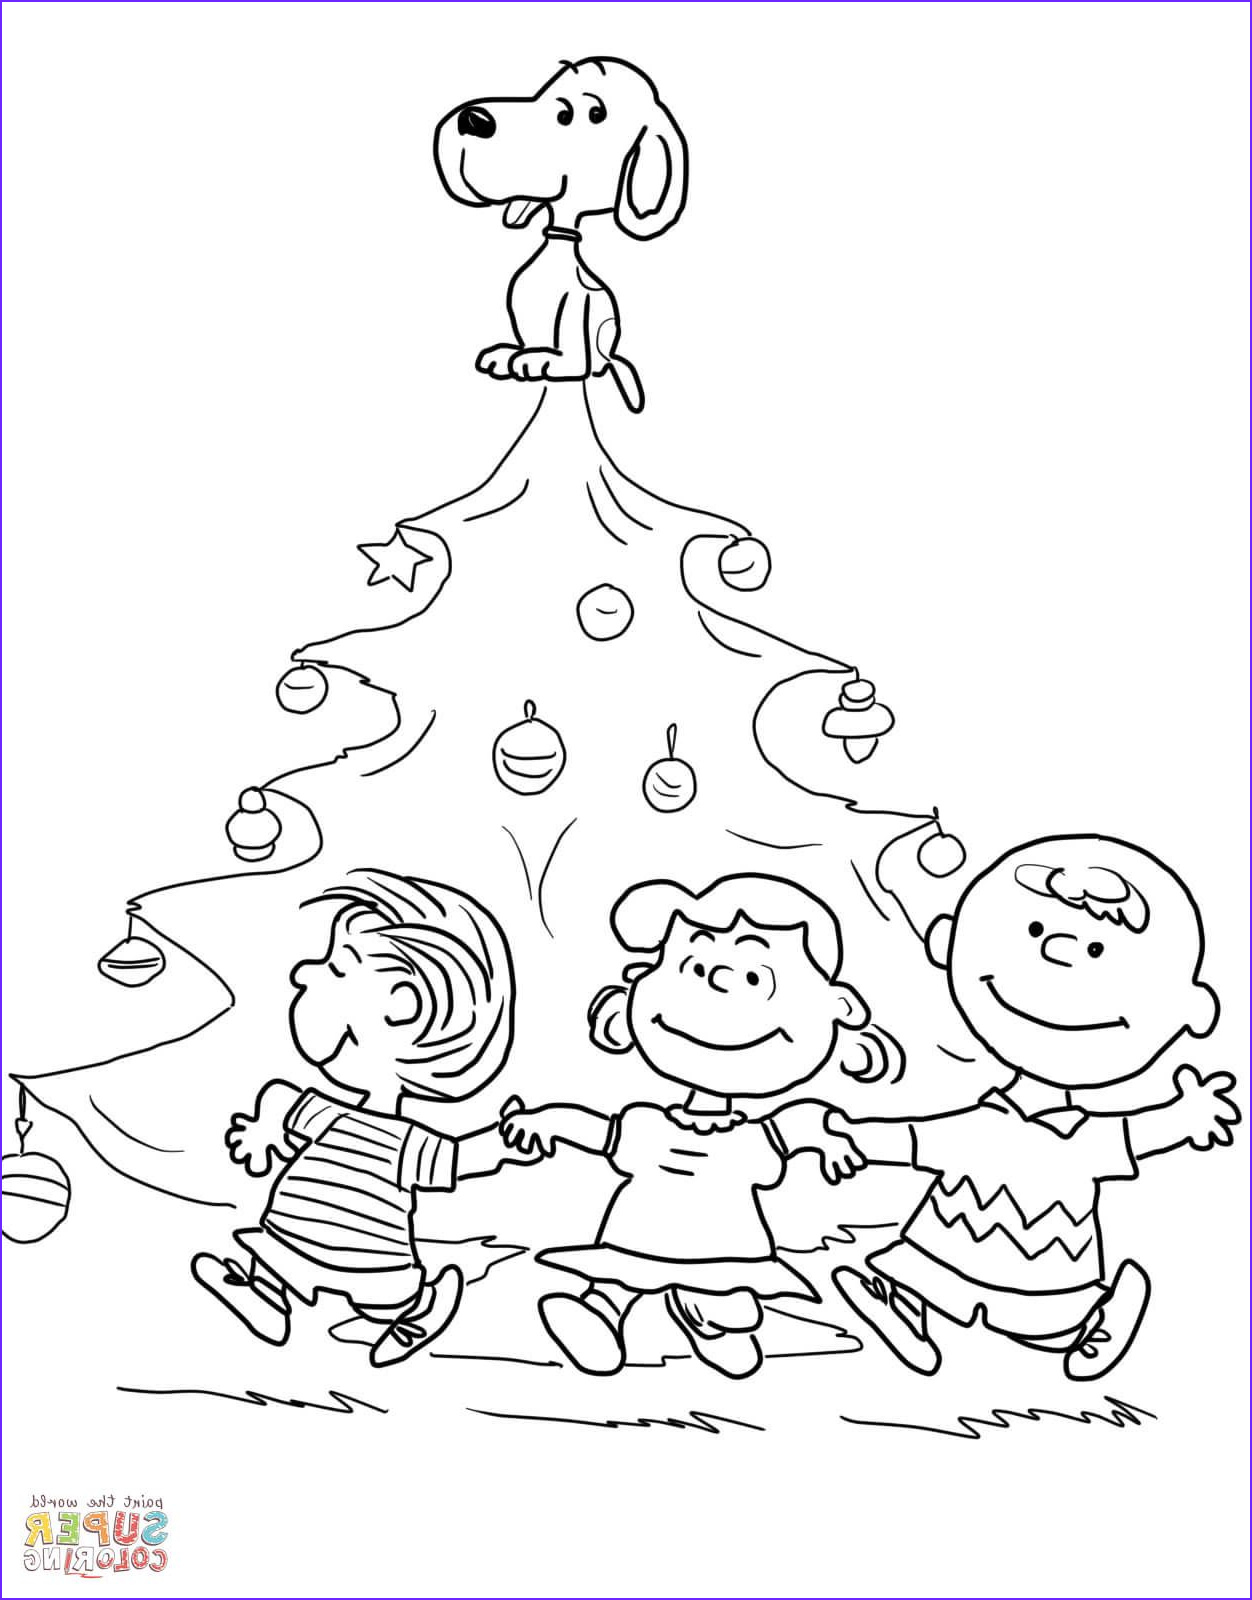 Charlie Brown Coloring Pages Awesome Gallery Charlie Brown Christmas Tree Coloring Page